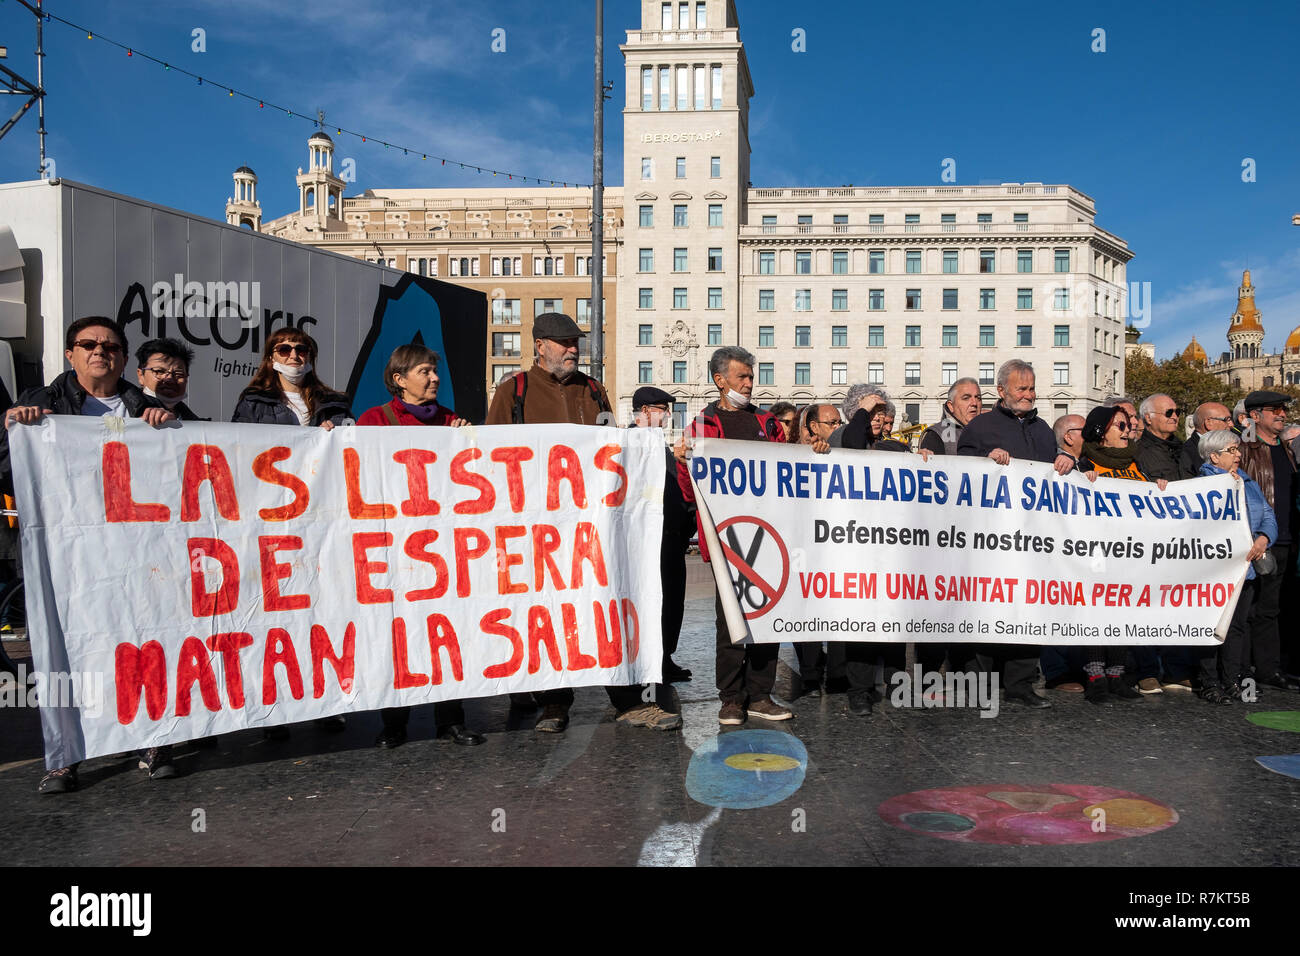 Barcelona, Spain. 10th December 2018. Protesters are seen holding  banners against waiting lists of public health during the protest. Called by Marea Blanca Catalunya within the state fight against the waiting lists and the commercialization of health, the protesters have toured the center of Barcelona to finish in front of the Generalitat of Catalonia. Credit: SOPA Images Limited/Alamy Live News - Stock Image